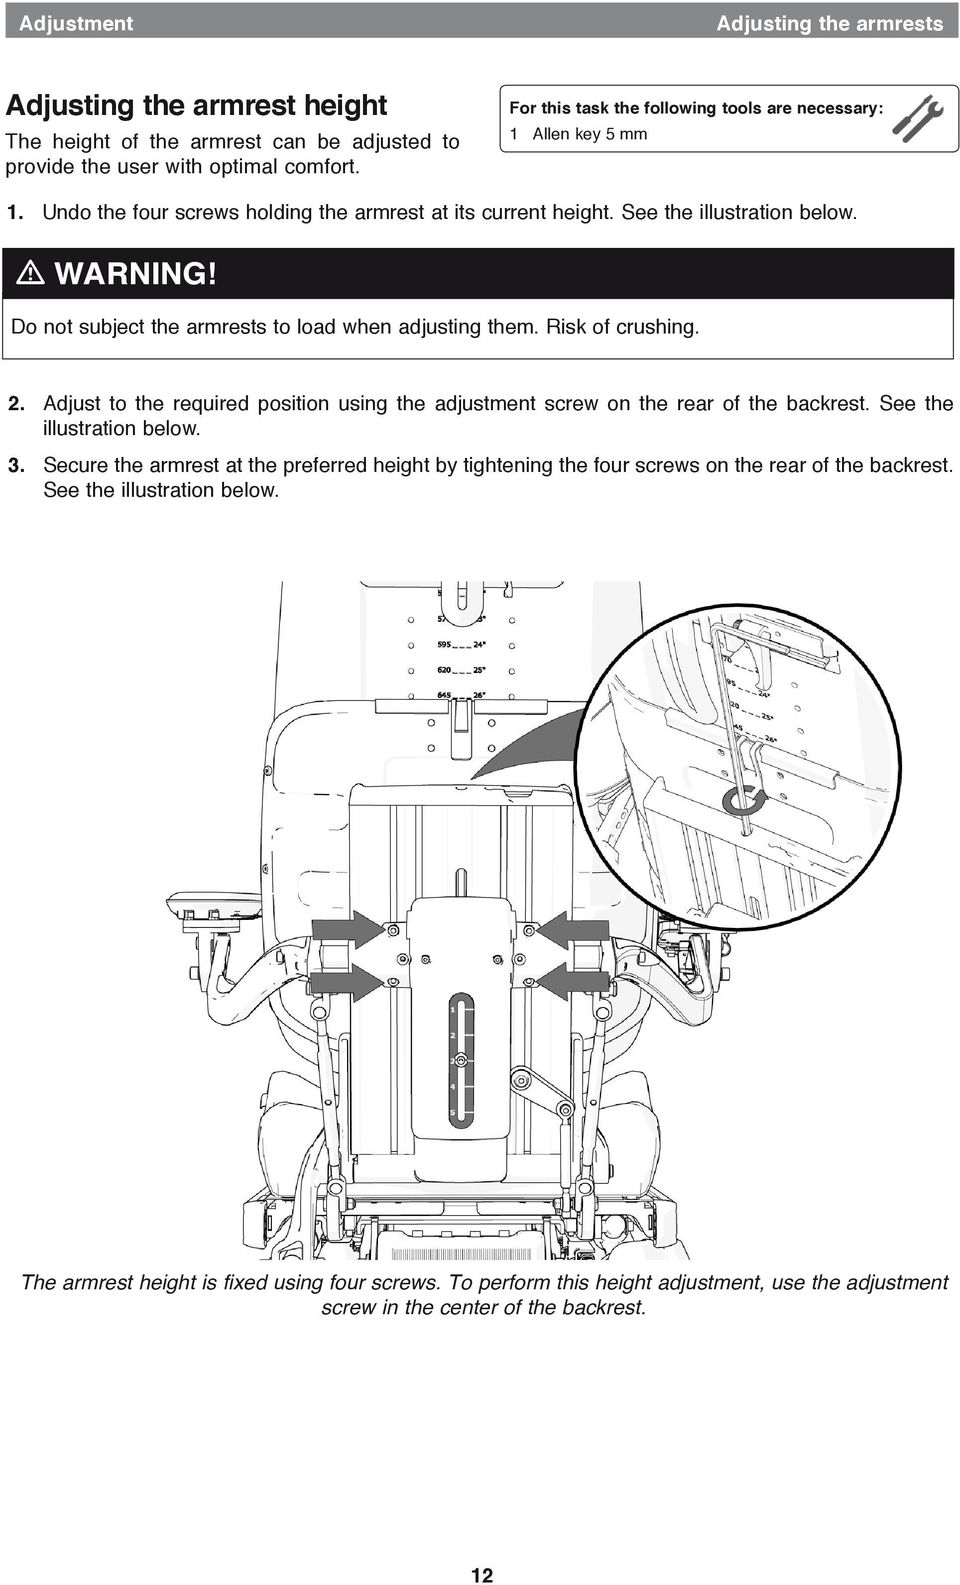 Do not subject the armrests to load when adjusting them. Risk of crushing. 2. Adjust to the required position using the adjustment screw on the rear of the backrest. See the illustration below. 3.